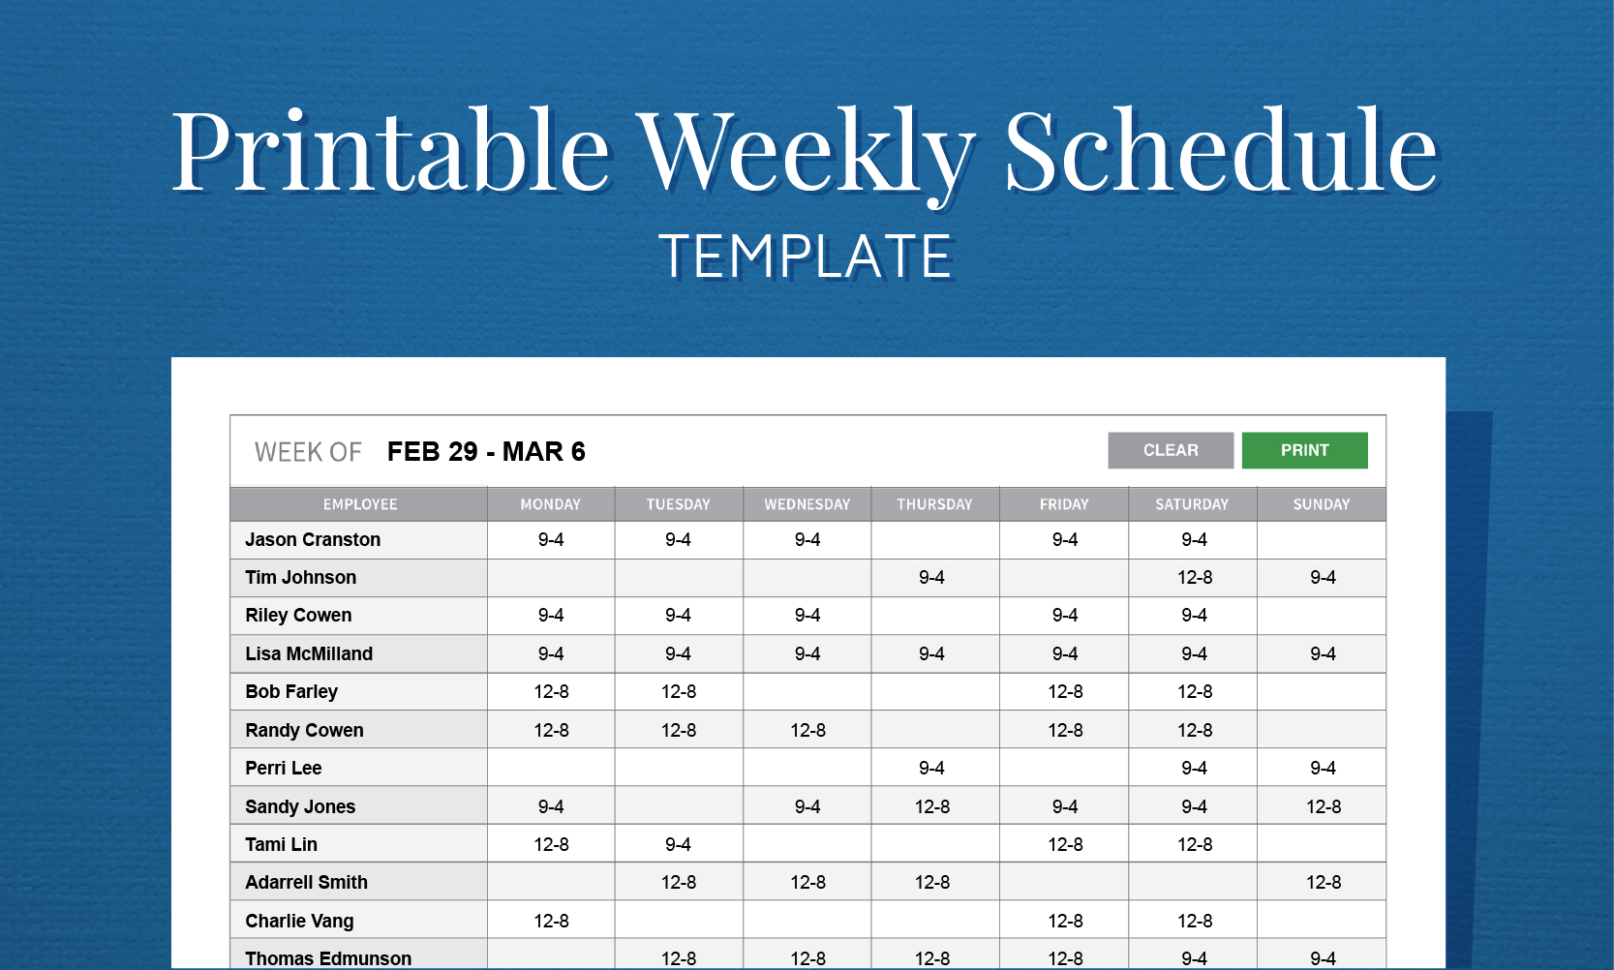 Free Printable Weekly Work Schedule Template For Employee Scheduling With Employee Weekly Schedule Template